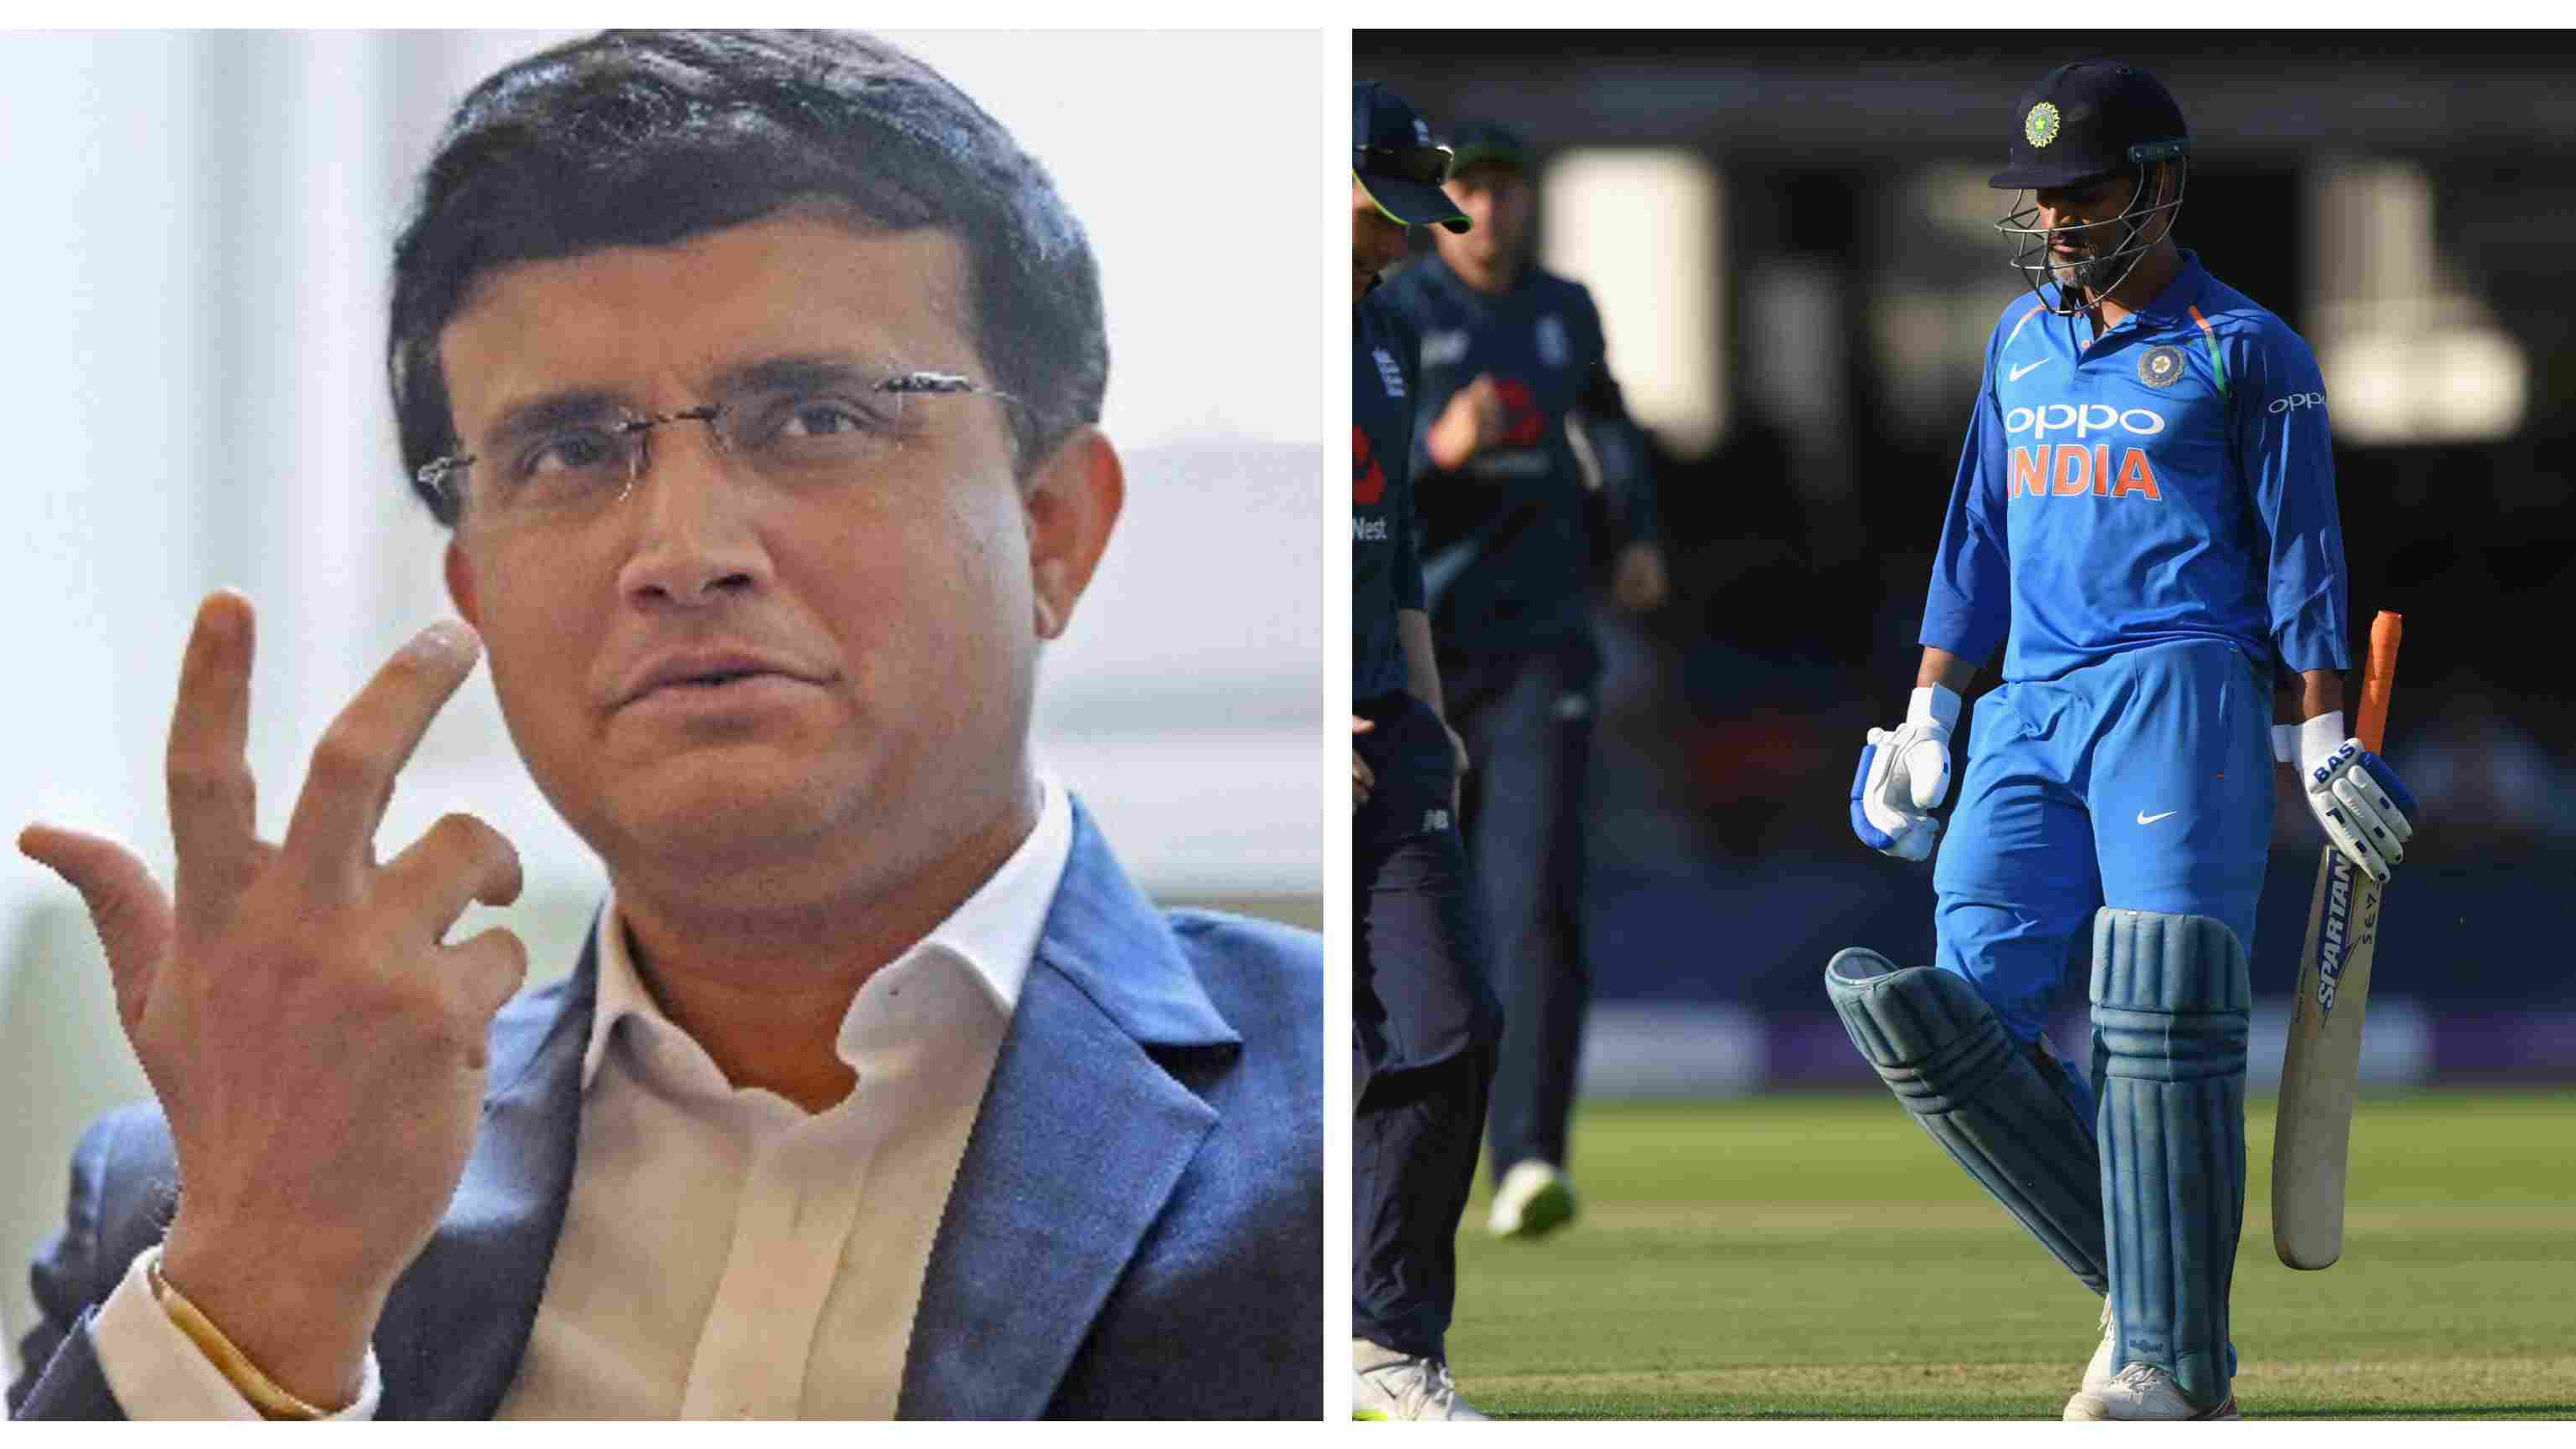 ENG v IND 2018: Sourav Ganguly shares his views on under-fire MS Dhoni